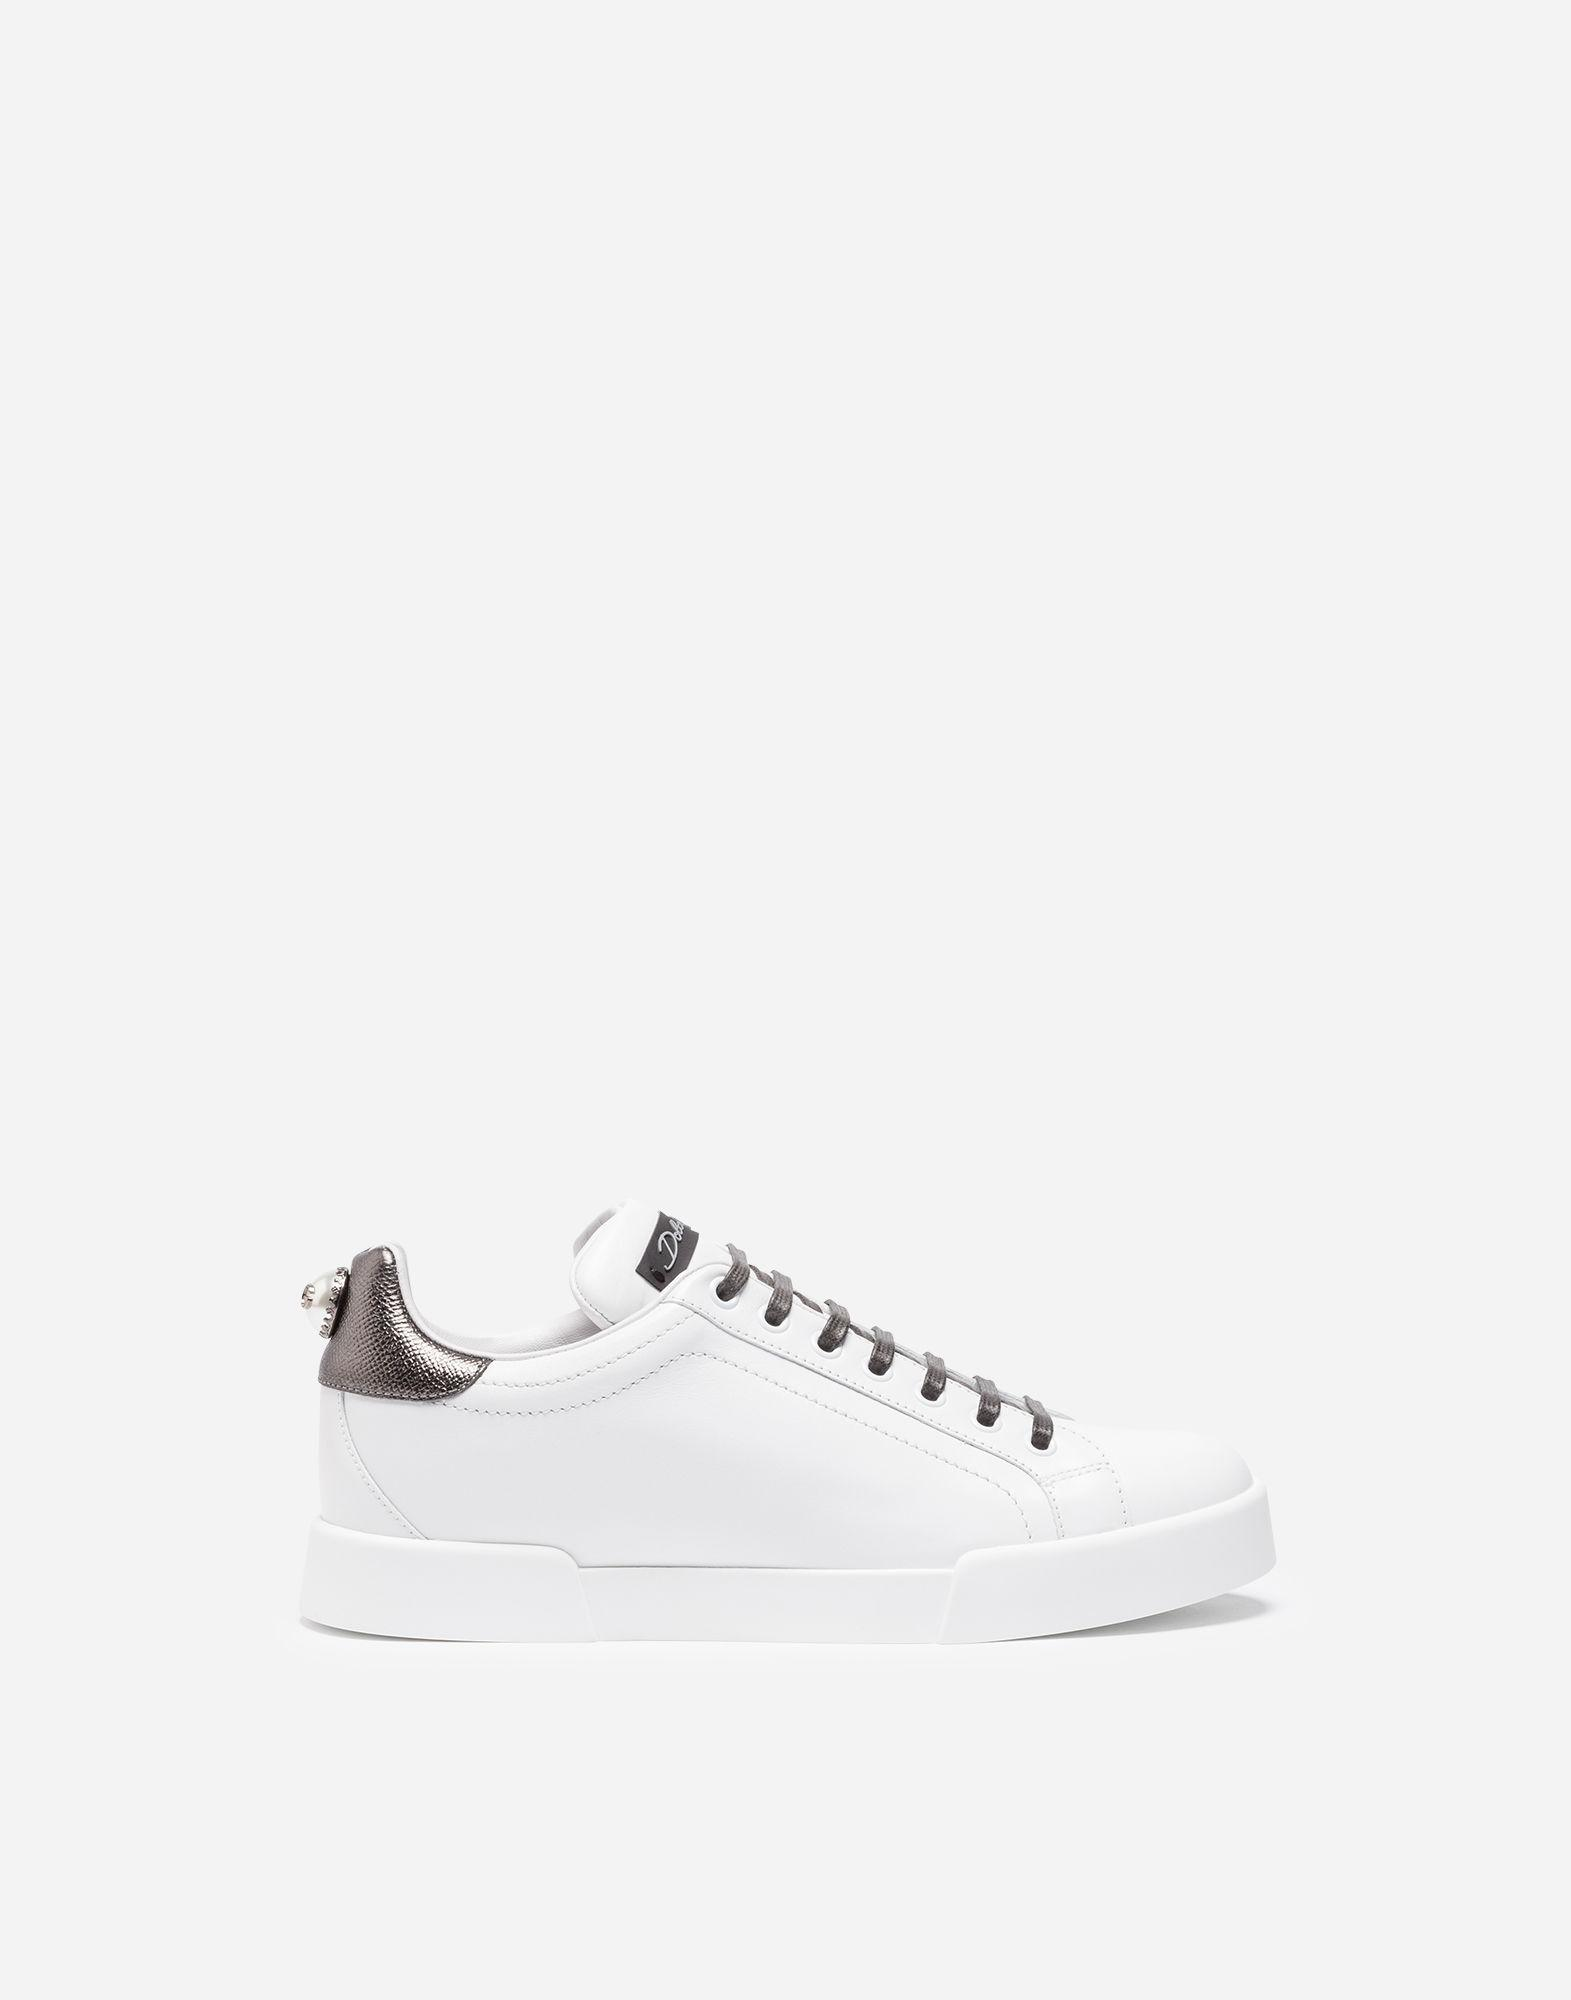 Dolce & Gabbana Sneakers - LEATHER SNEAKERS WITH APPLIQUé Clearance Deals Explore Discount Latest IWkly